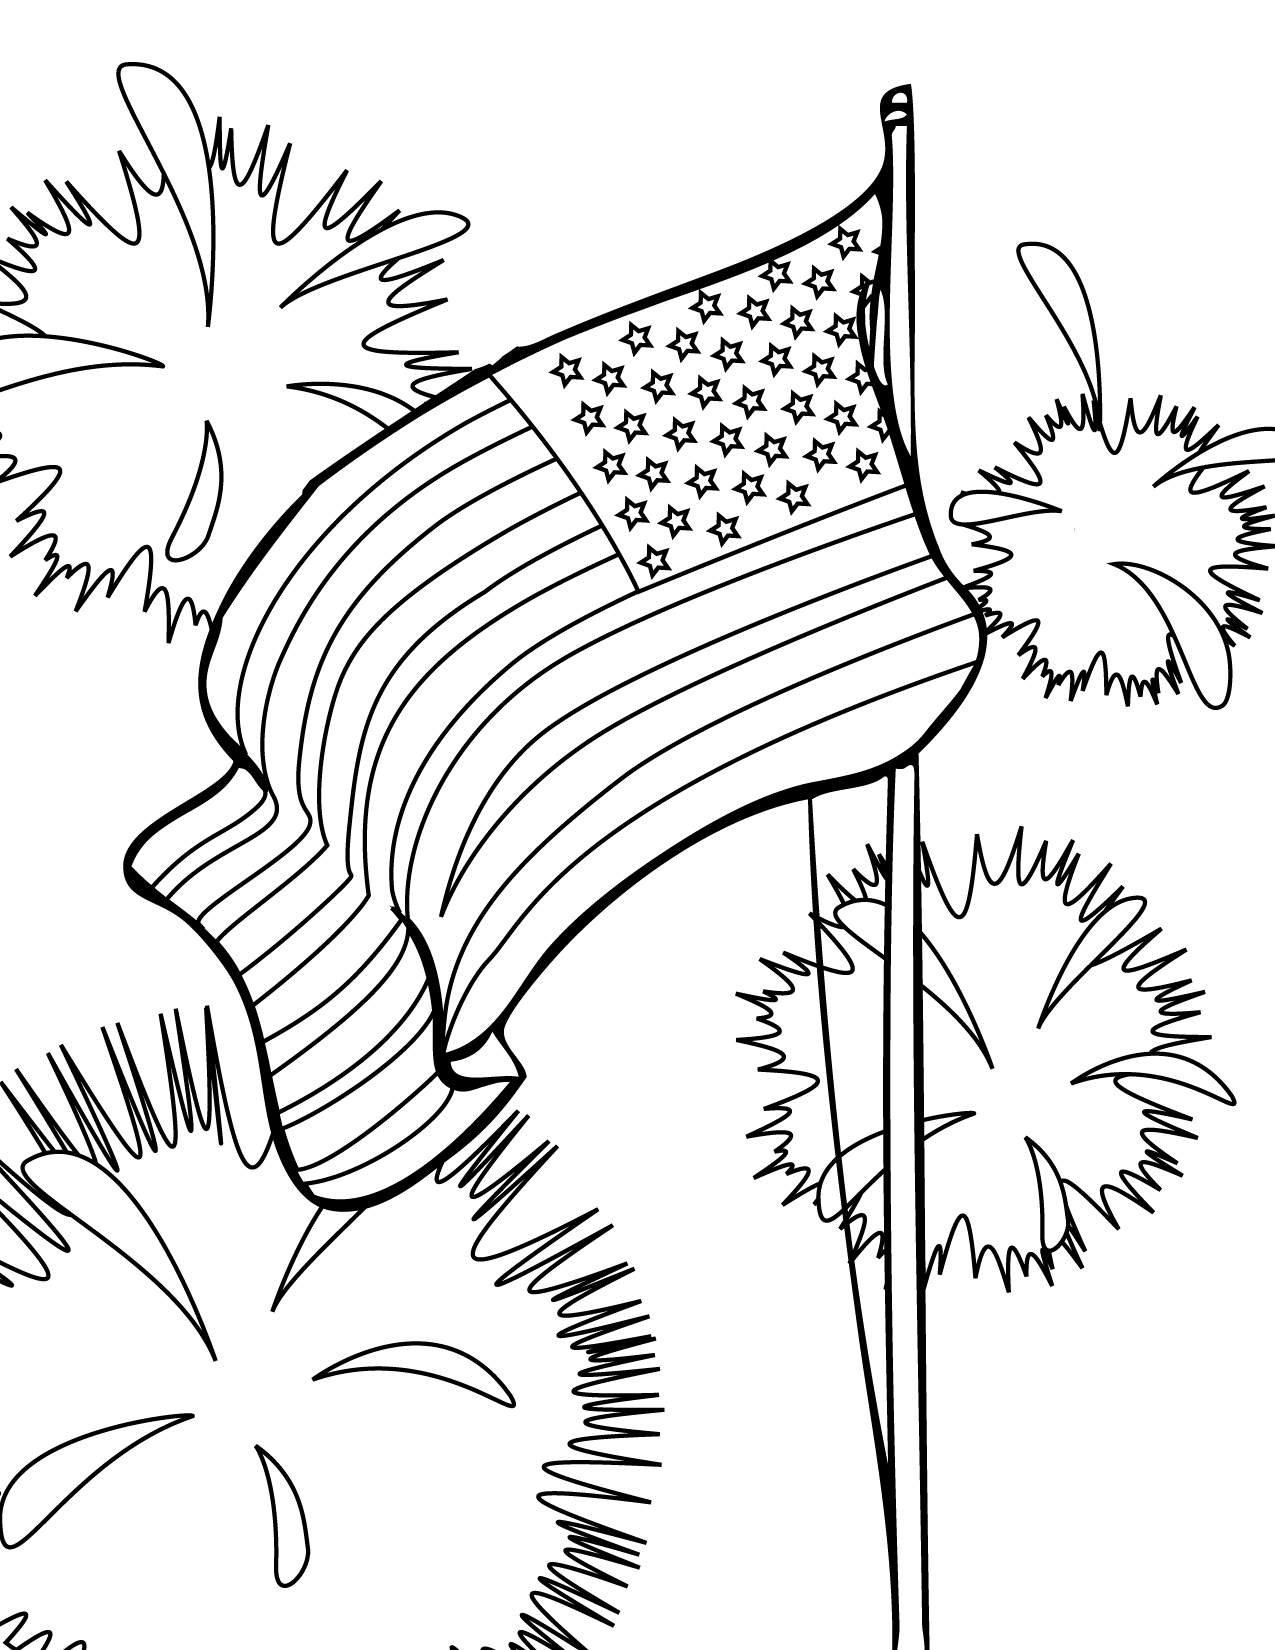 Fourth of July Coloring Pages - part III